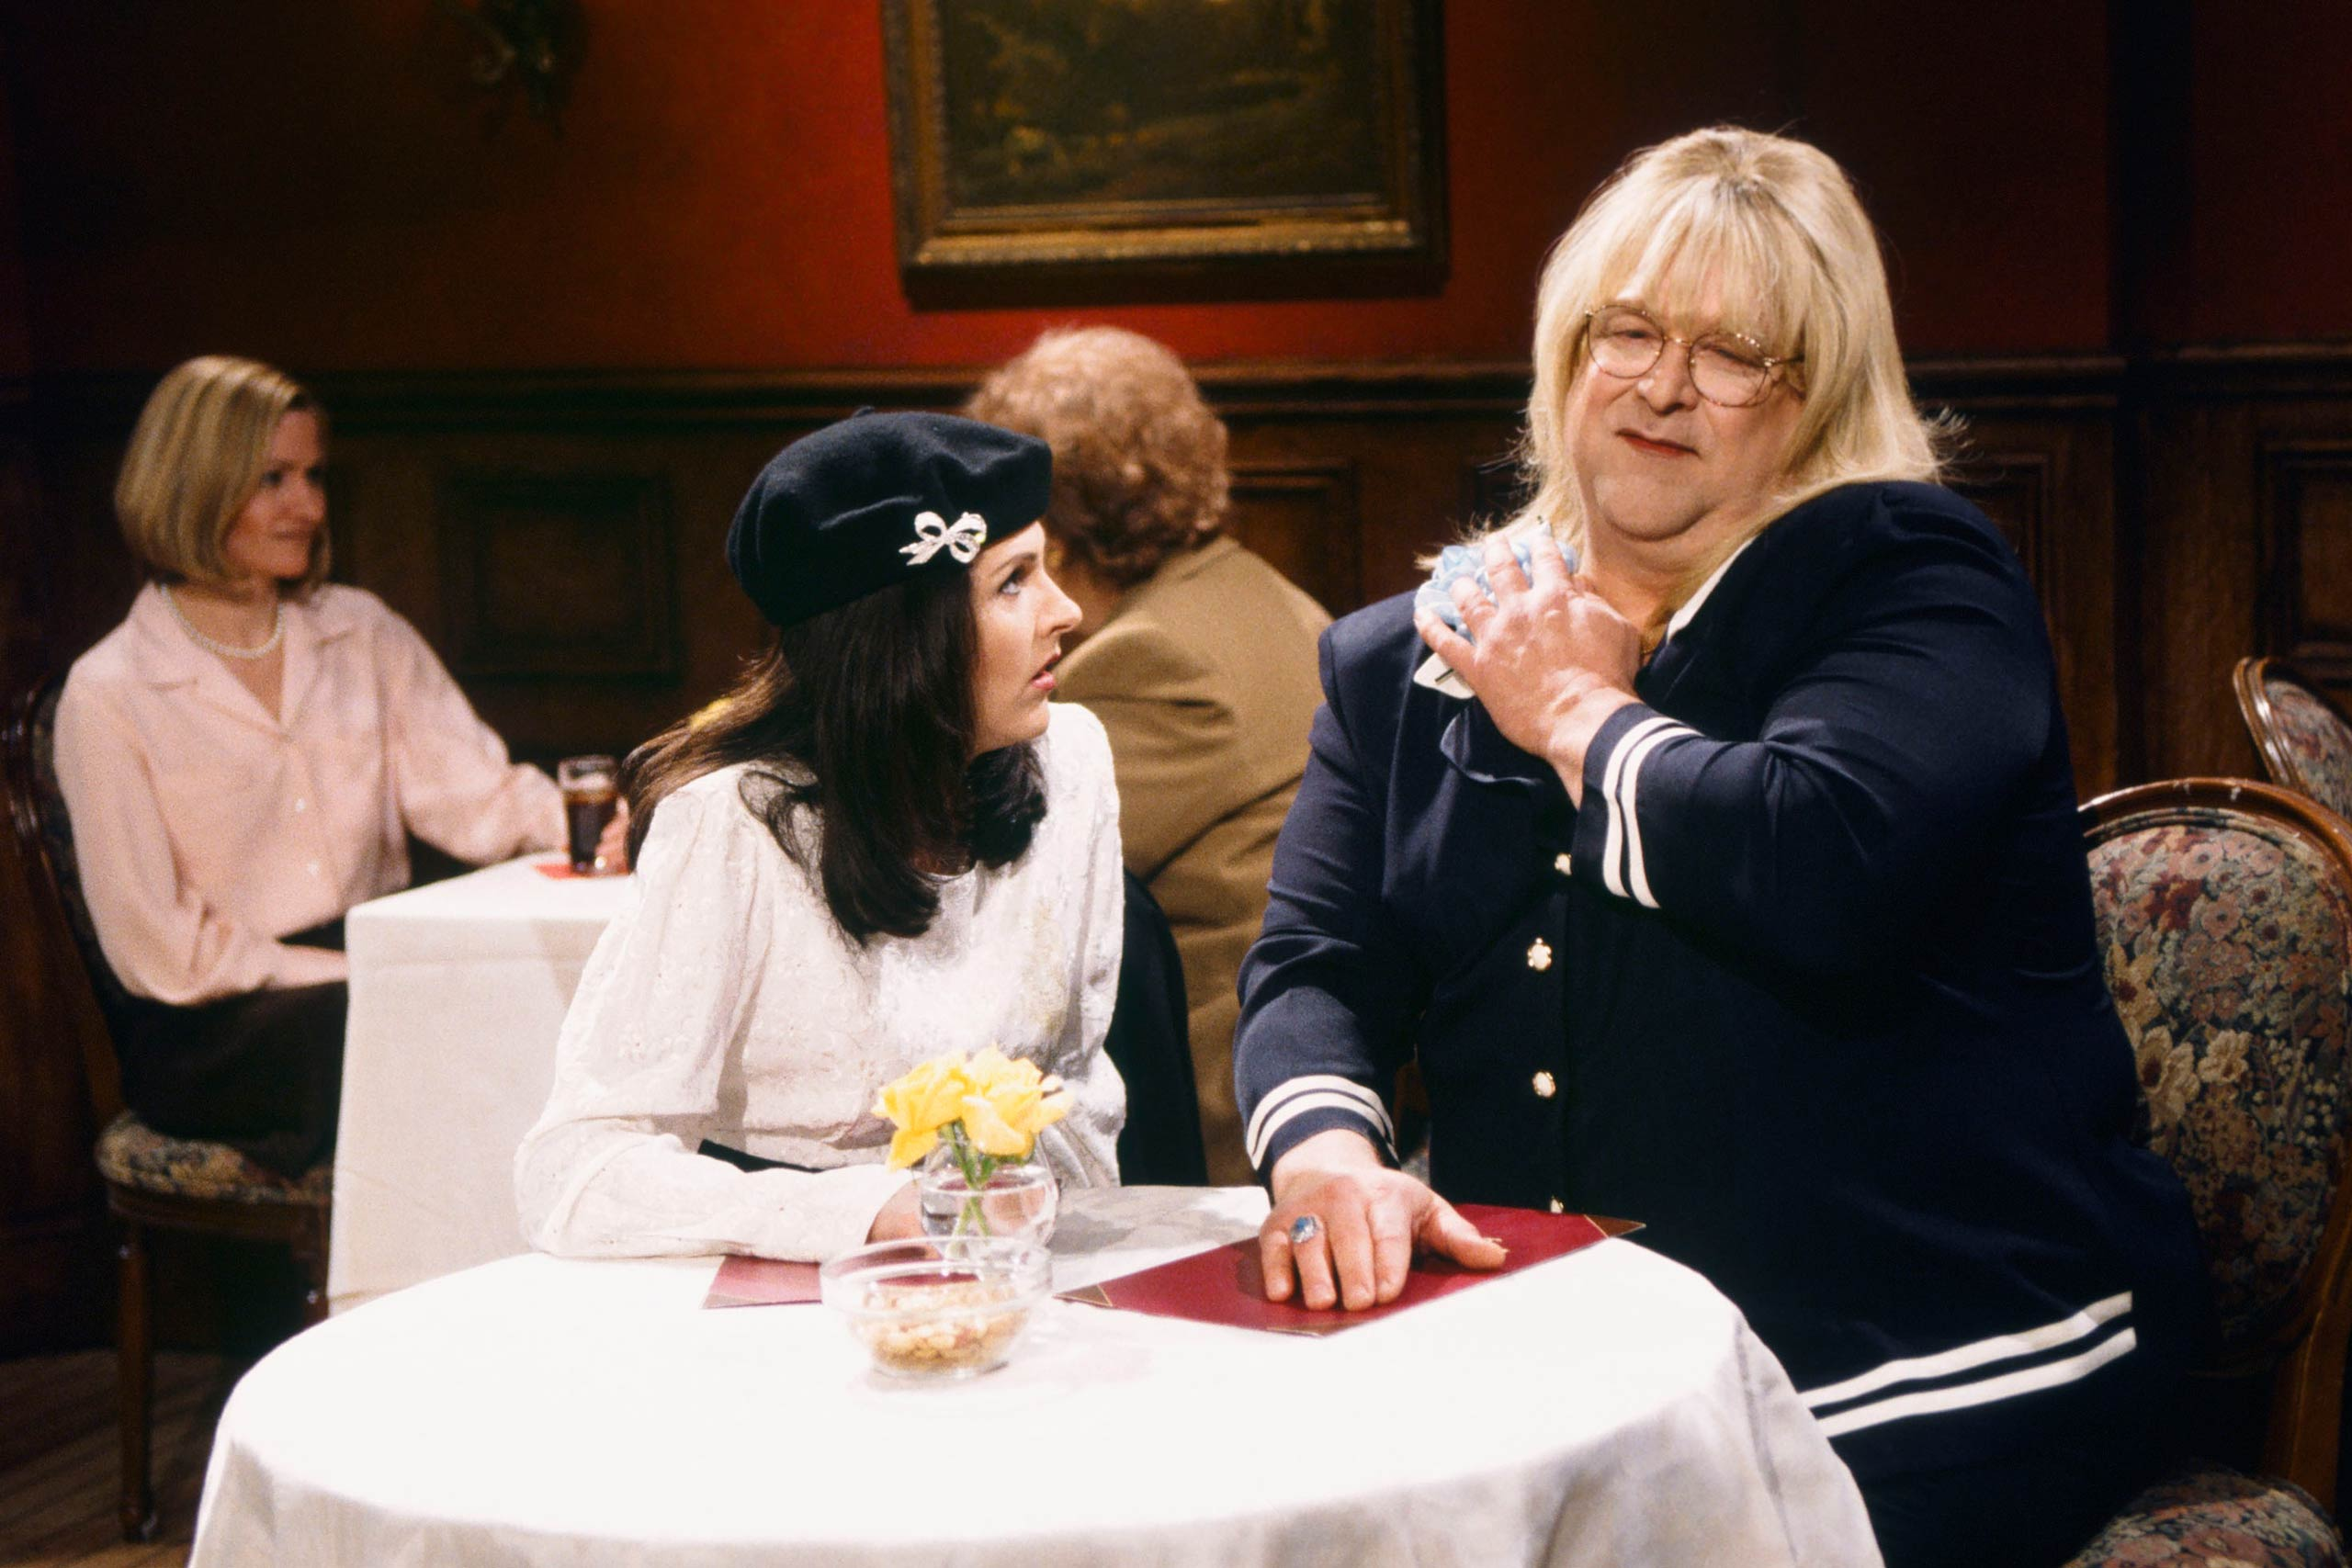 From left: Molly Shannon as Monica Lewinsky and John Goodman as Linda Tripp in 1998.